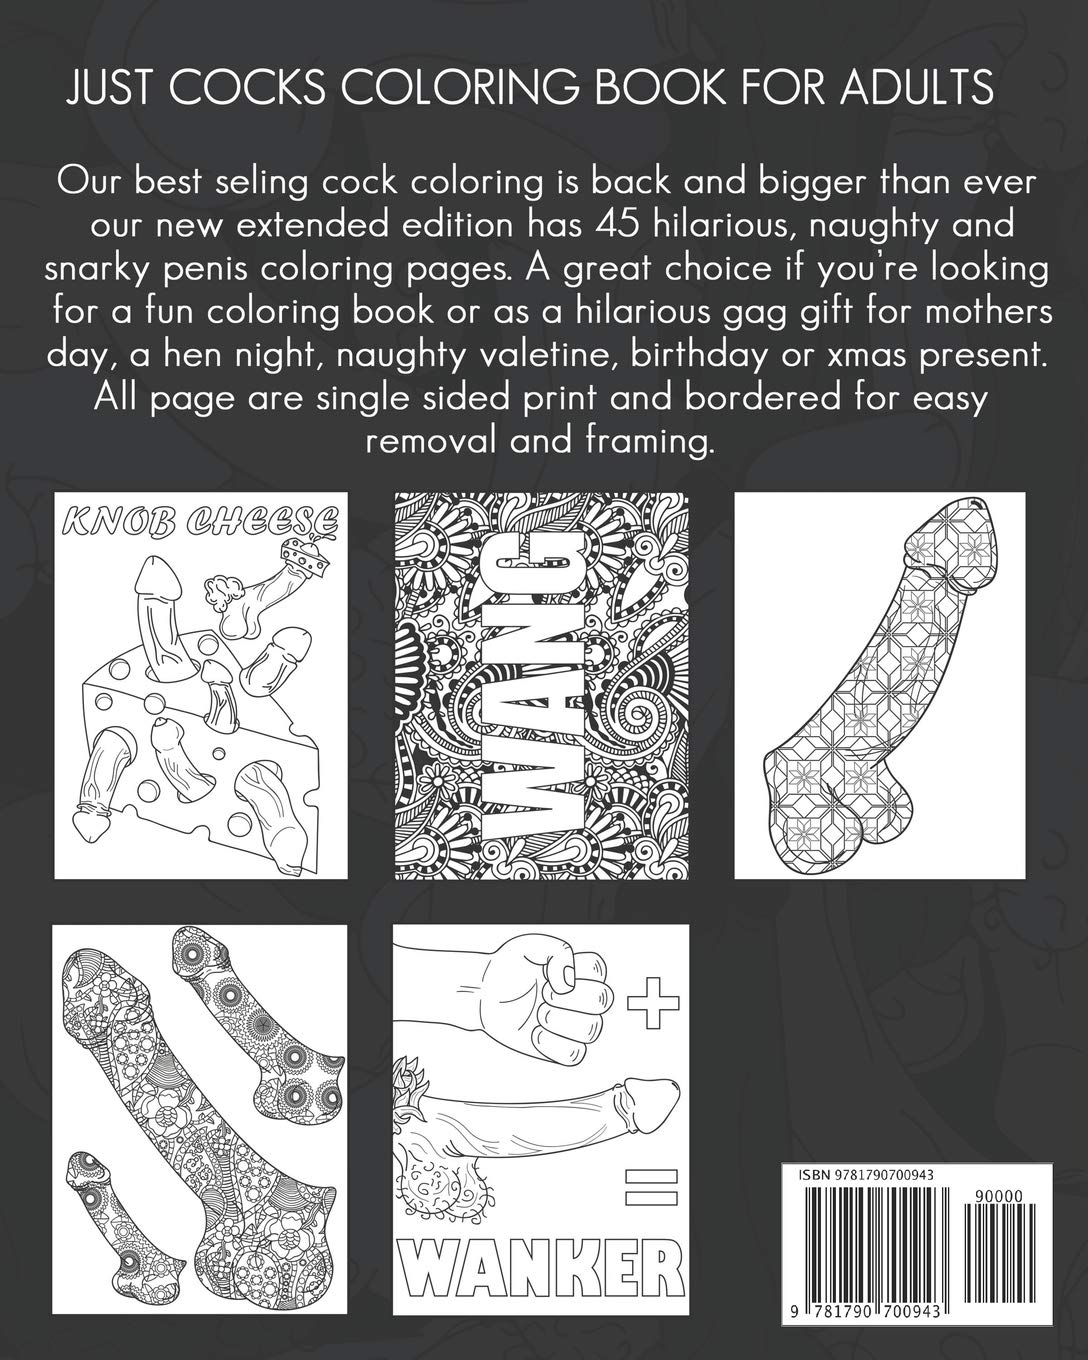 Amazon com just cocks coloring book for adults funny and naughty penis coloring book containing 45 pages filled with paisley henna and mandala patterns